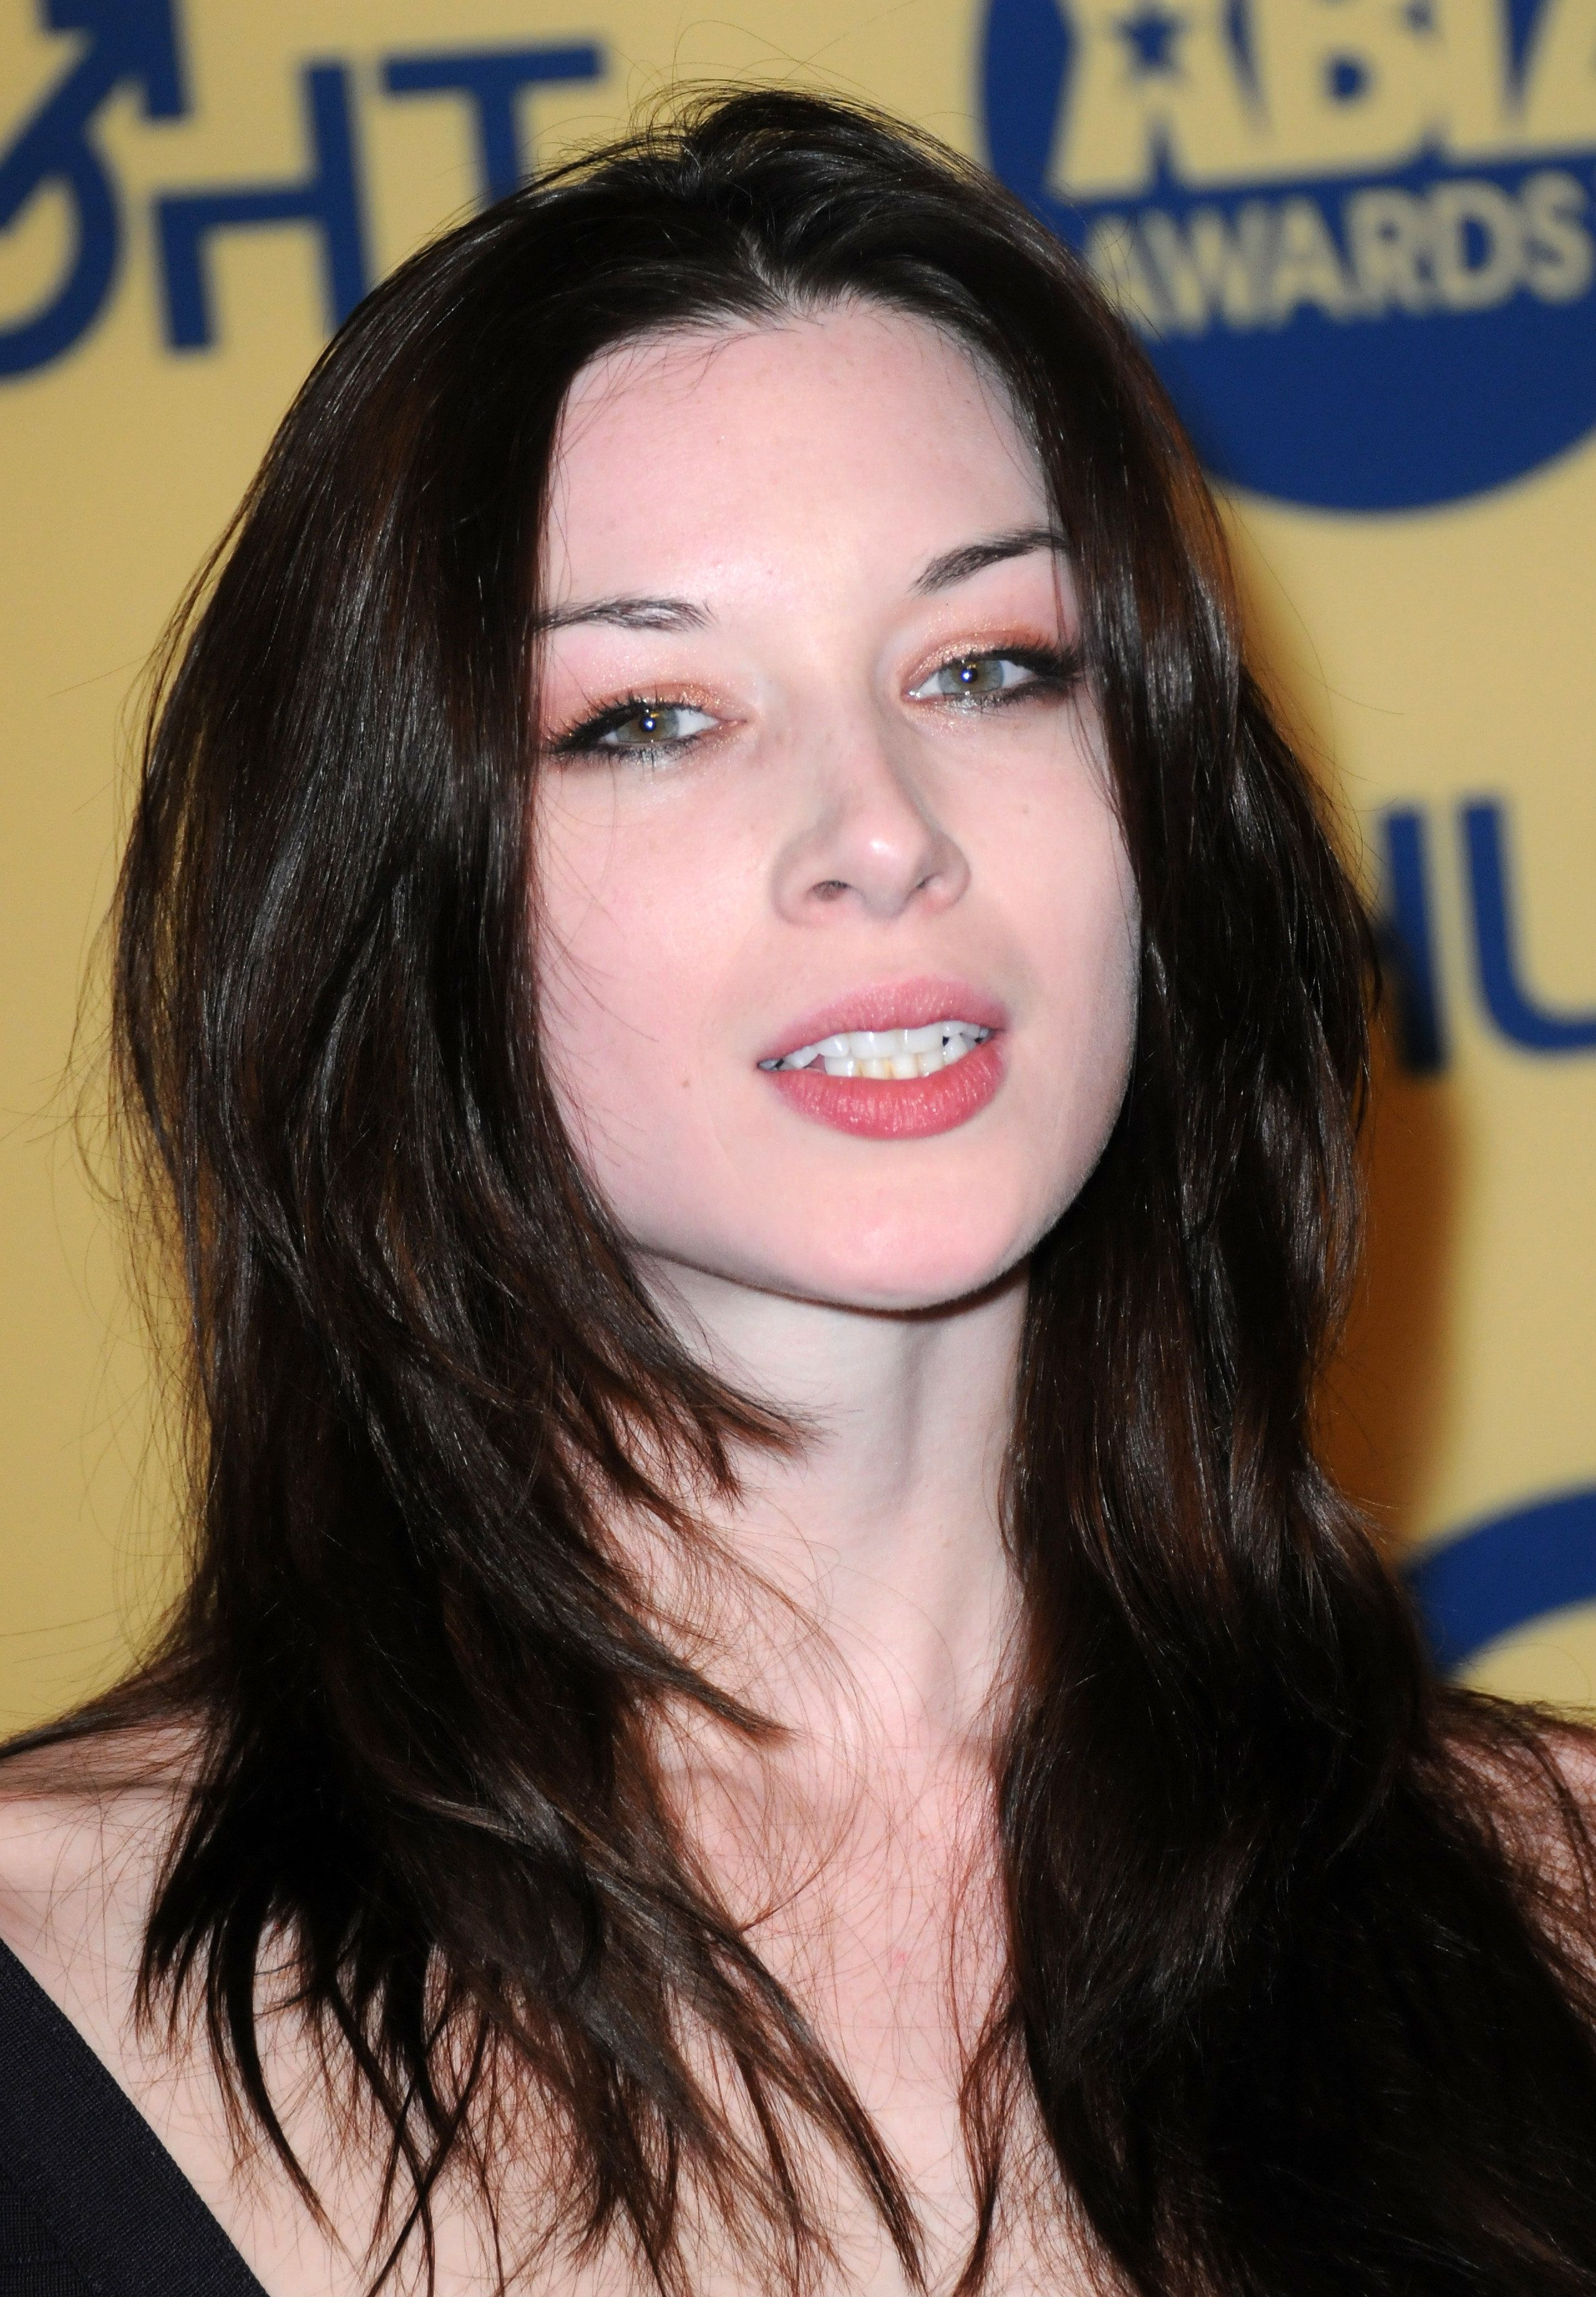 CENTURY CITY, CA - JANUARY 11:  Adult Film actress Stoya arrives for the 2013 XBIZ Awards held at the Hyatt Regency Century Plaza on January 11, 2013 in Century City, California.  (Photo by Albert L. Ortega/WireImage)